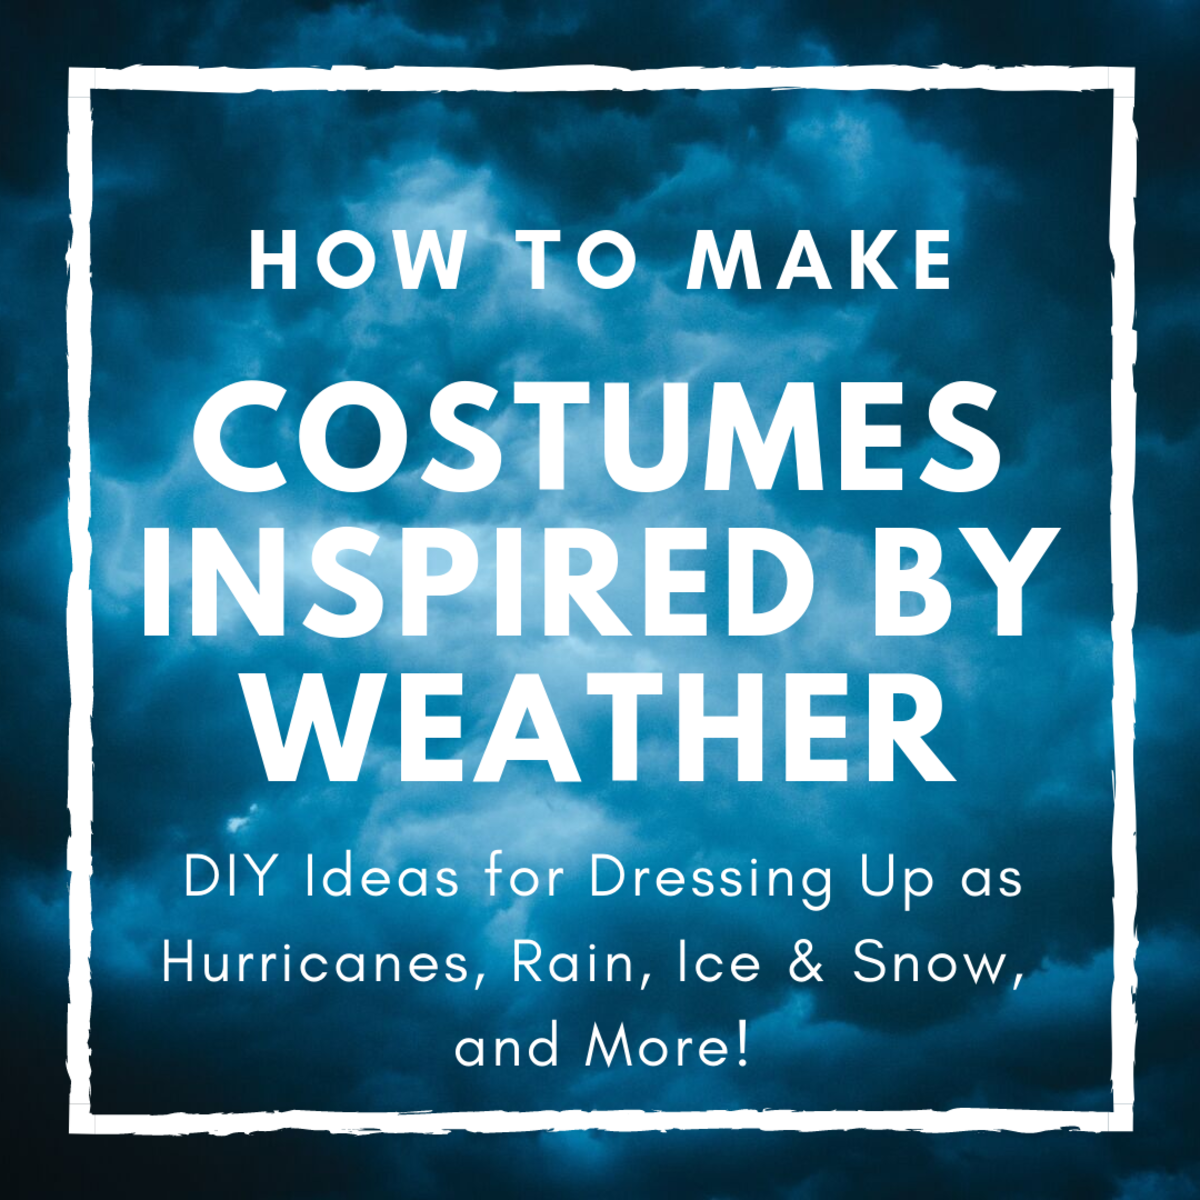 Weather Costume Ideas for Halloween Fun